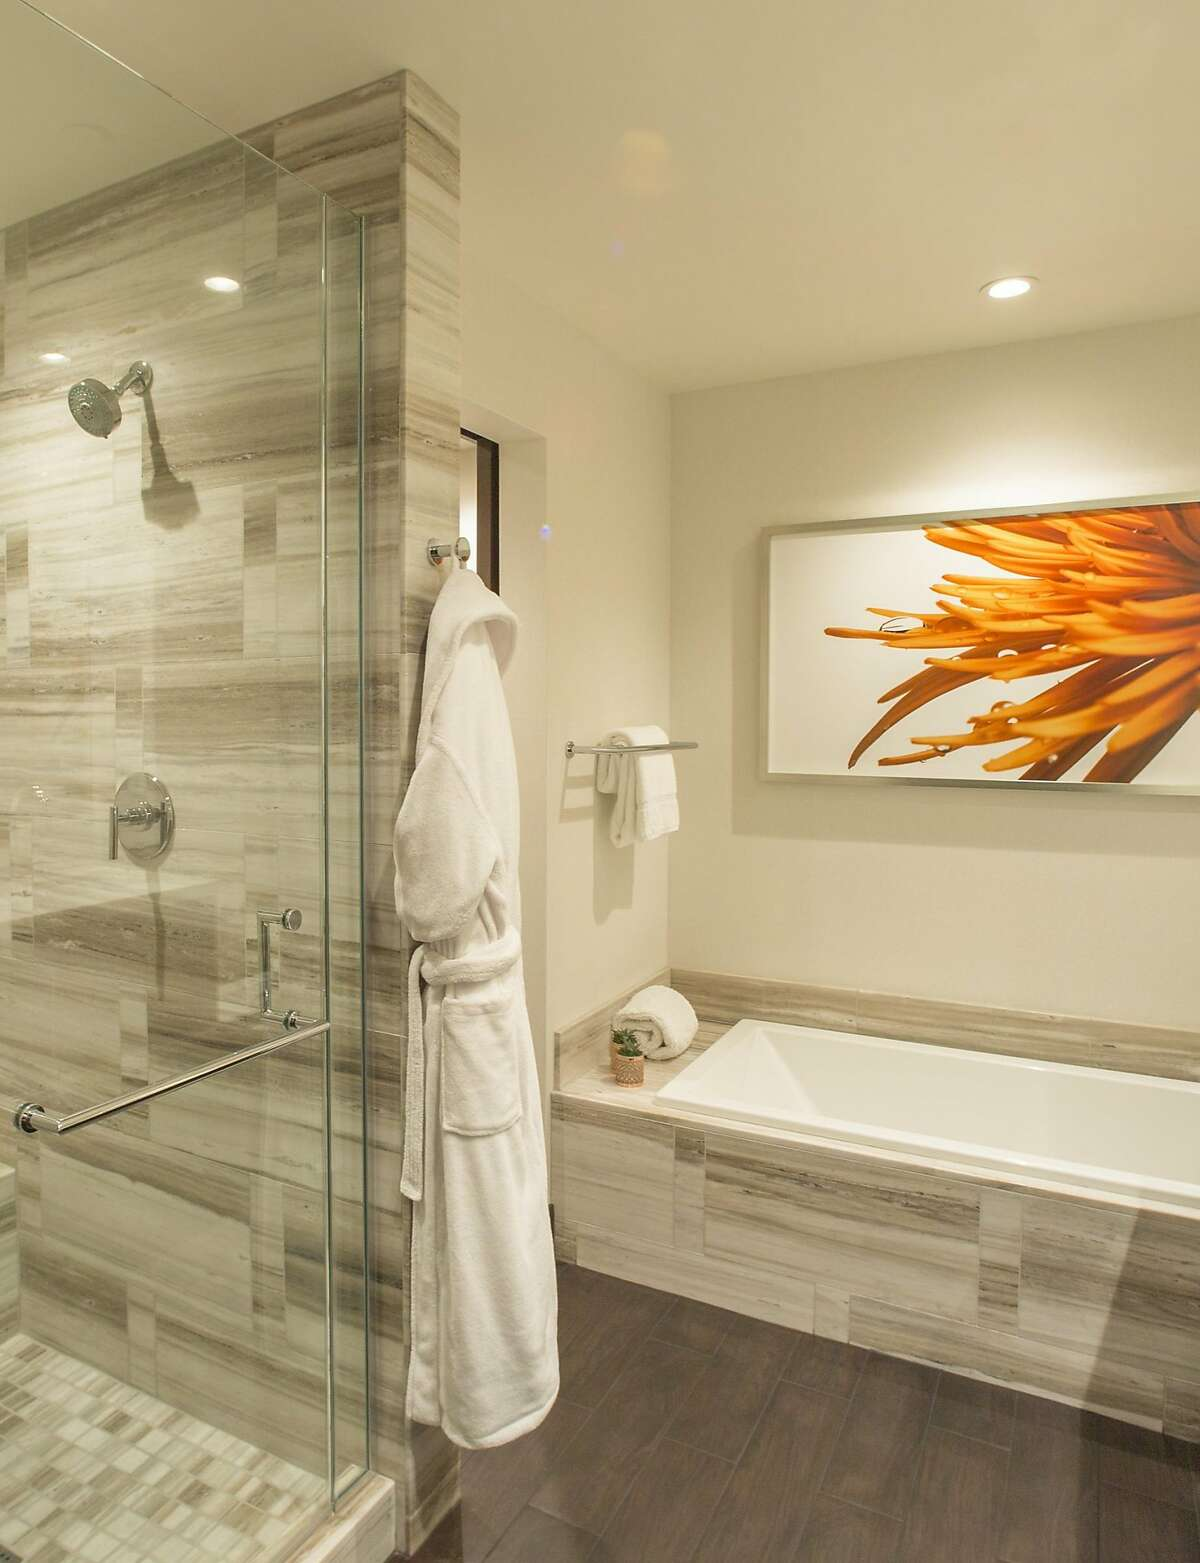 The new 200 guest rooms and suites at Graton Resort & Casino start at more than 500 square feet, larger than the typical city hotel room, and include�bathrooms with soaking tubs, stand-alone showers and double sinks as standard amenities.